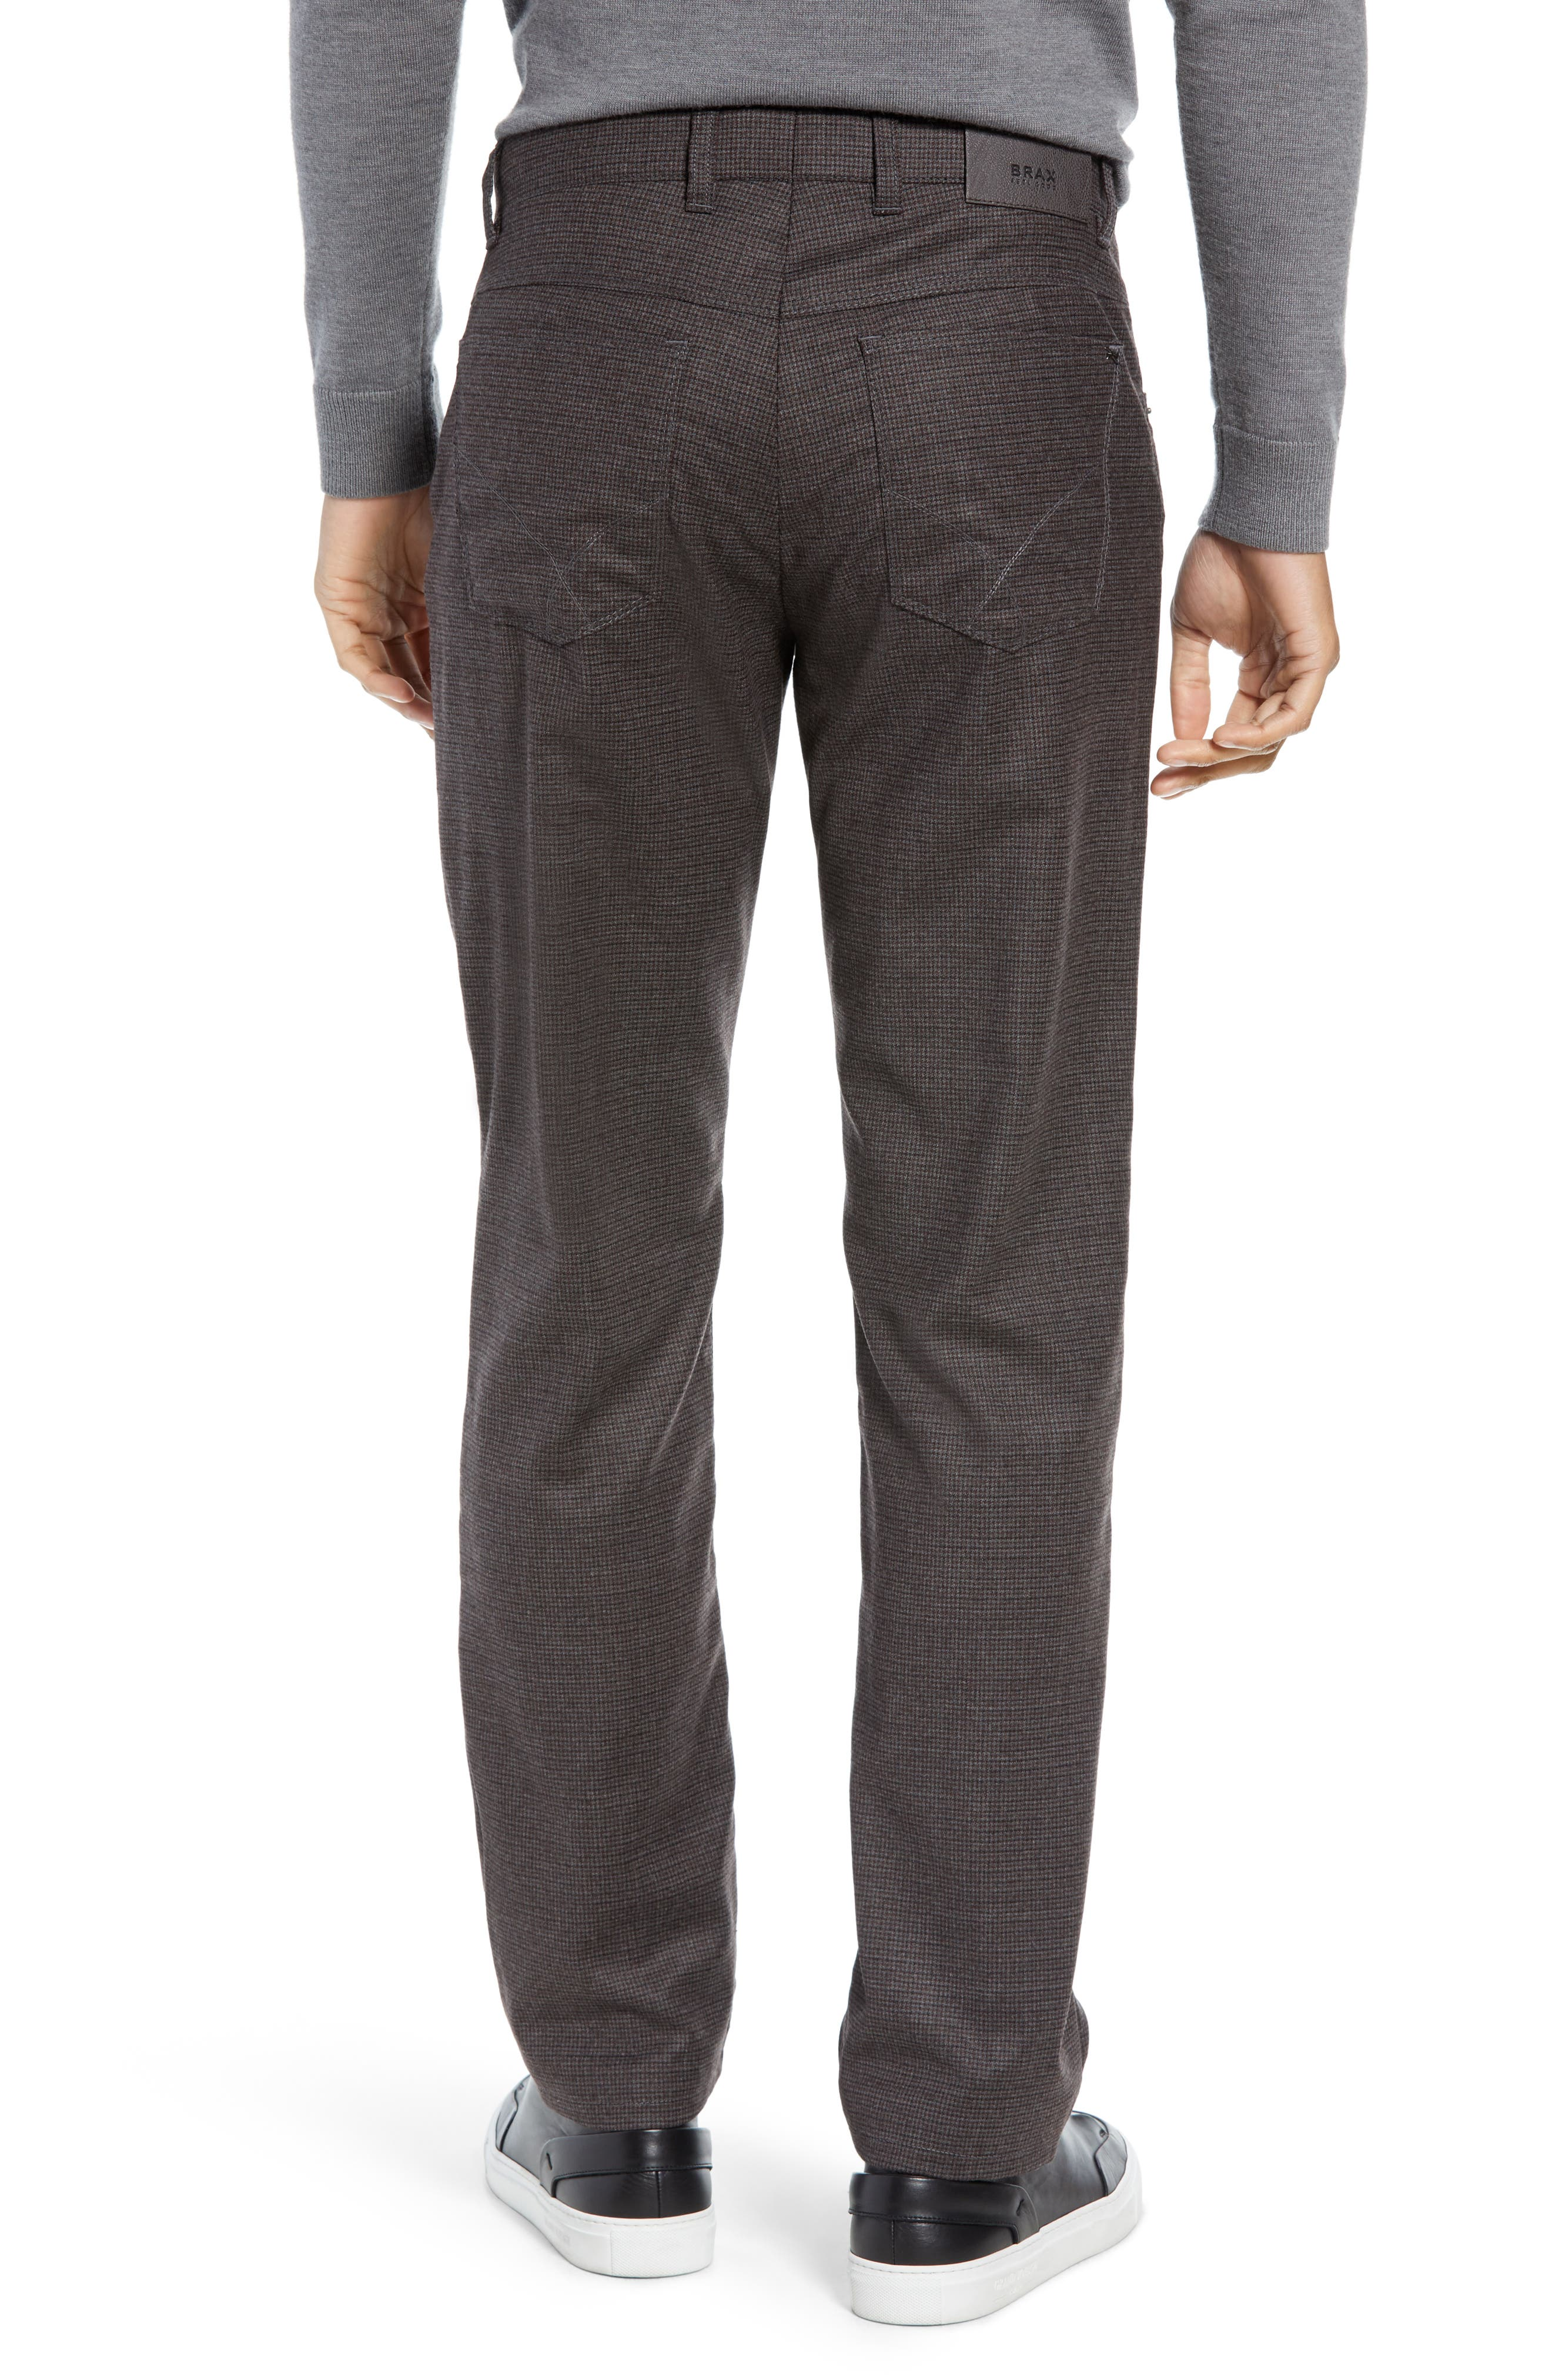 Cadiz Five Pocket Stretch Wool Trousers,                             Alternate thumbnail 2, color,                             ANTHRACITE